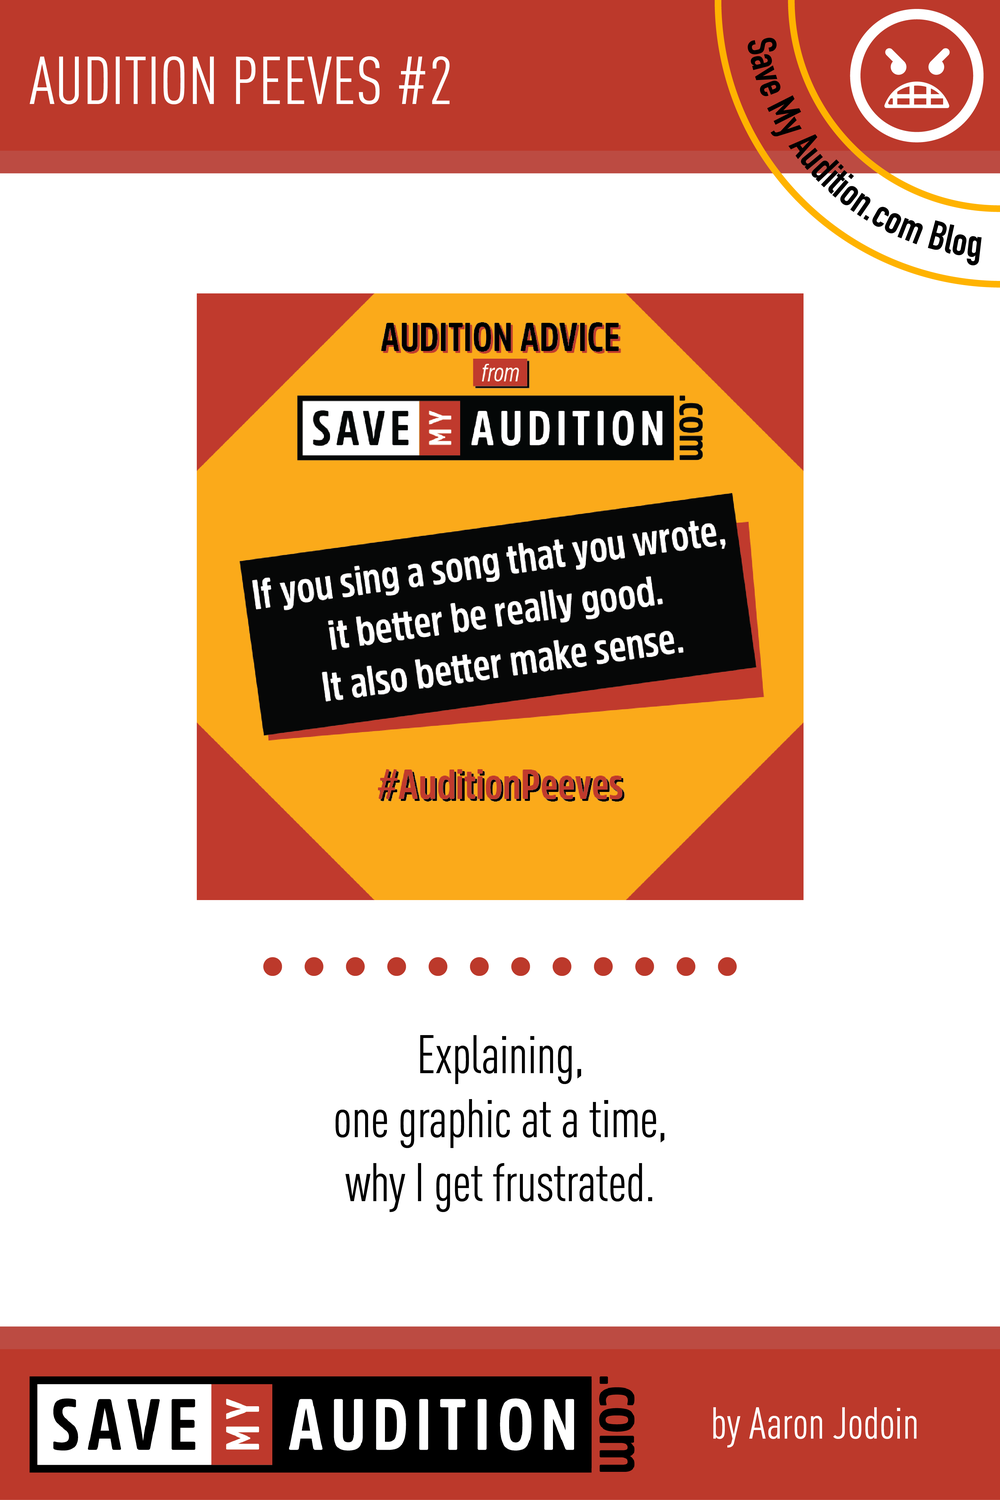 AUDITION_PEEVES_02-01.png